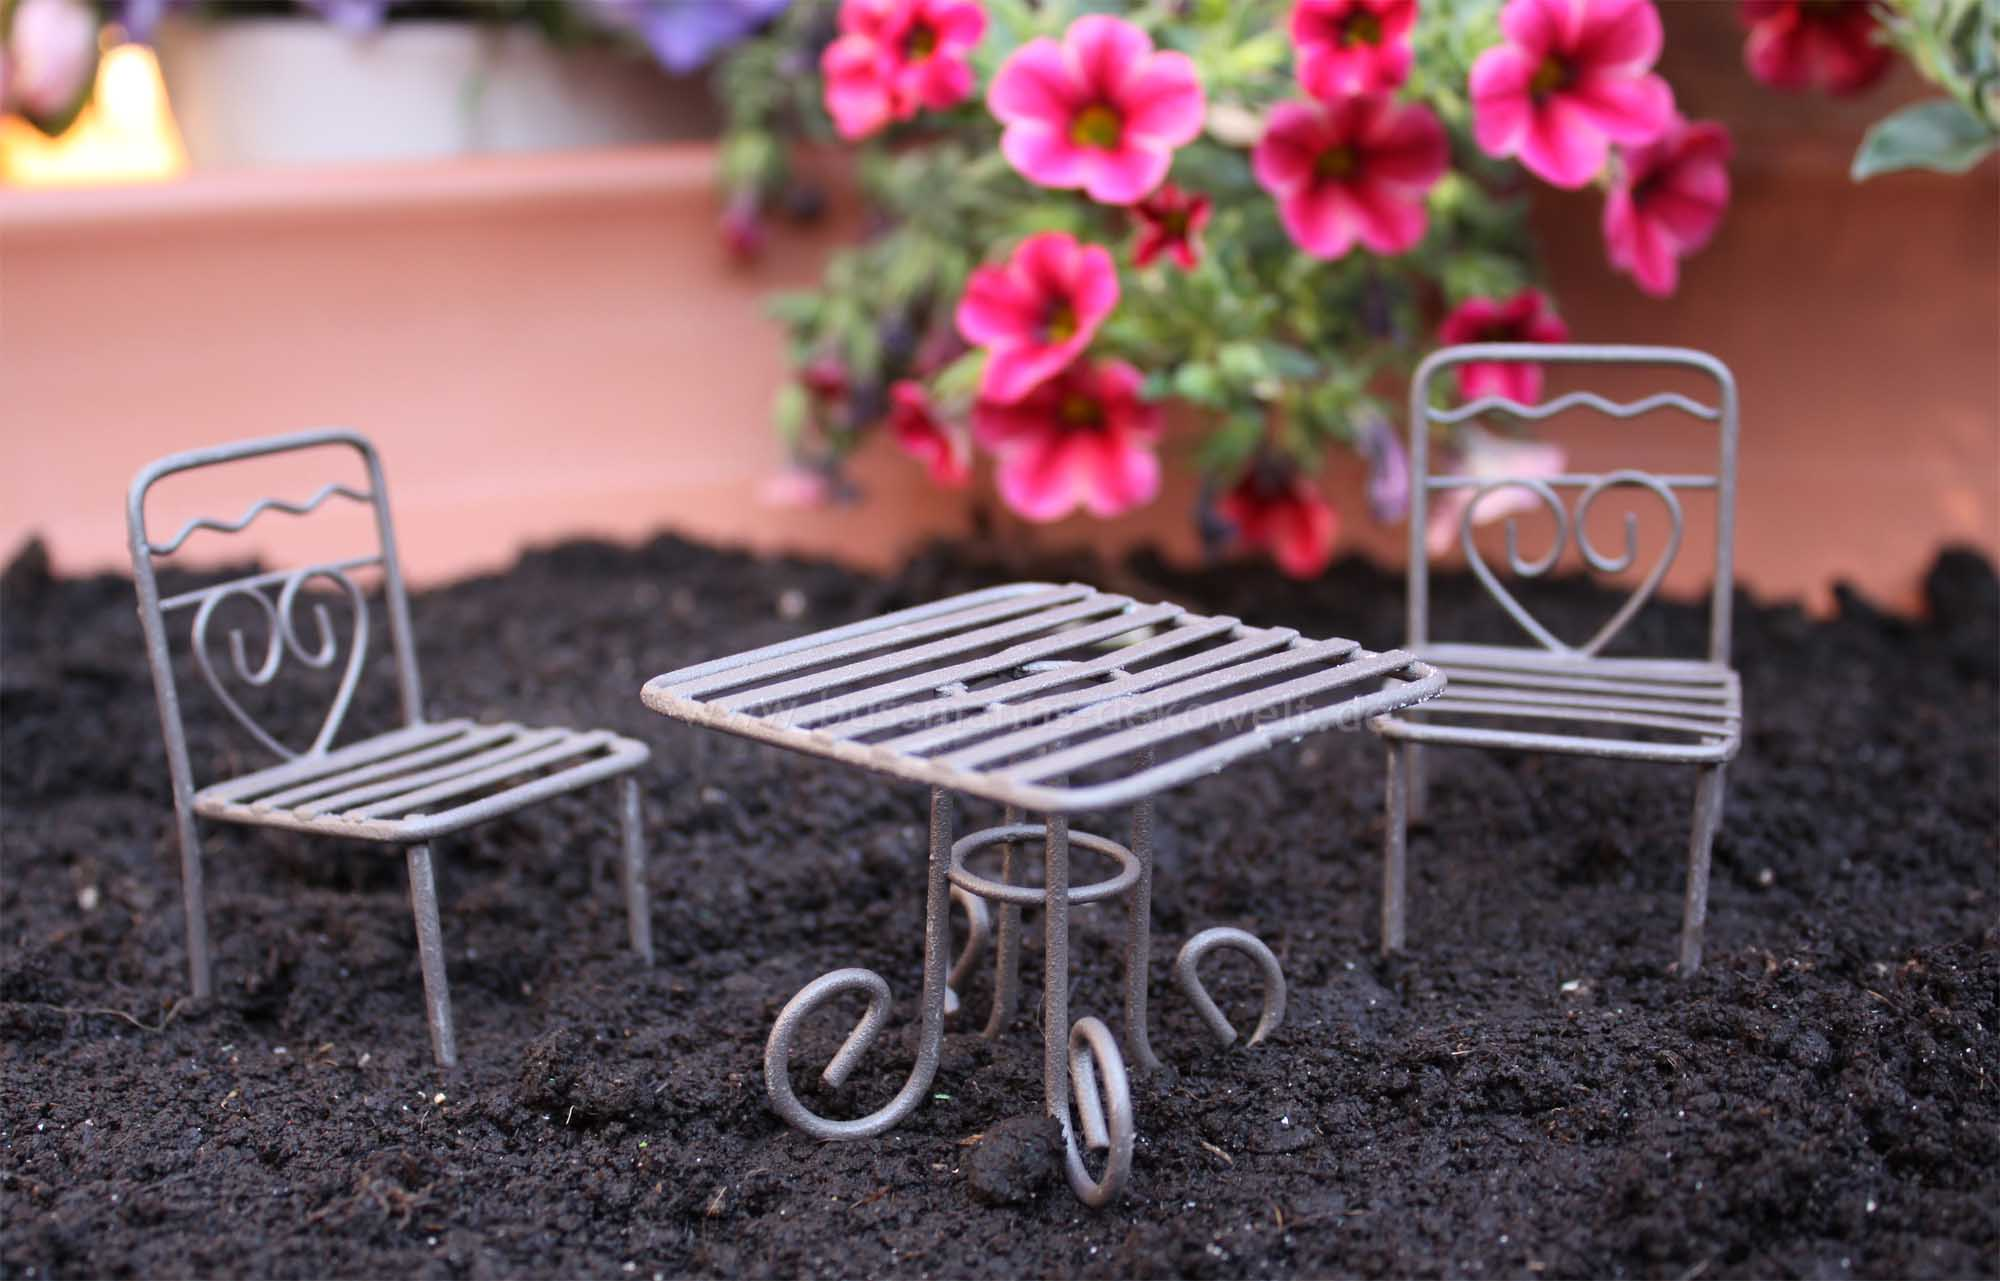 mini garten gartentisch eckig mit st hlen braun minigarten mini garten deko ebay. Black Bedroom Furniture Sets. Home Design Ideas